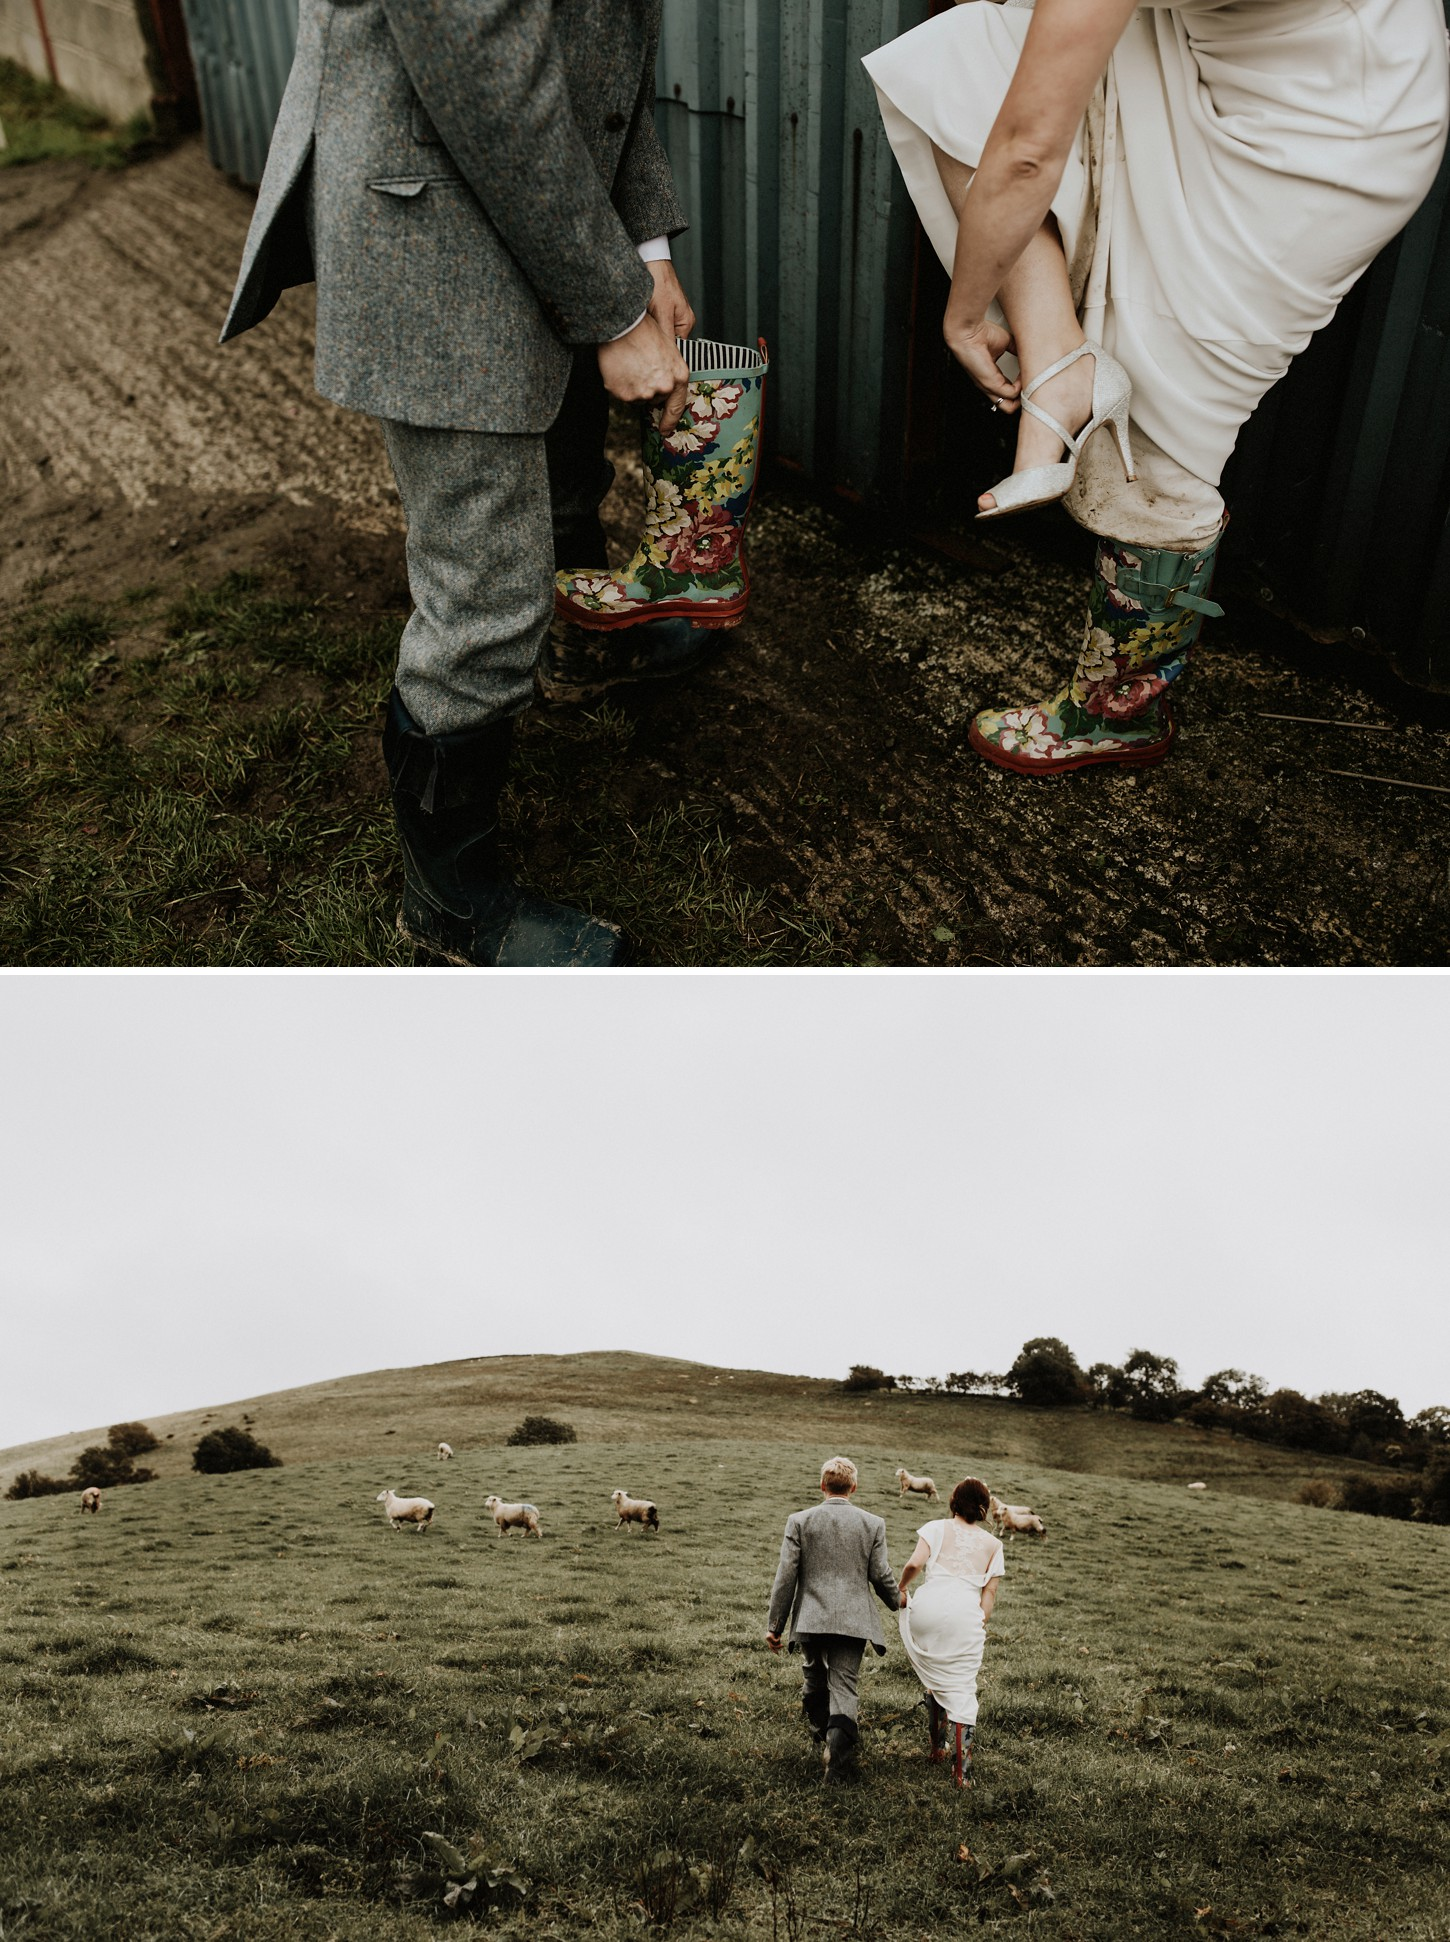 Dolau-Sheep-Farm-Wedding-Wales-United-Kingdom-040